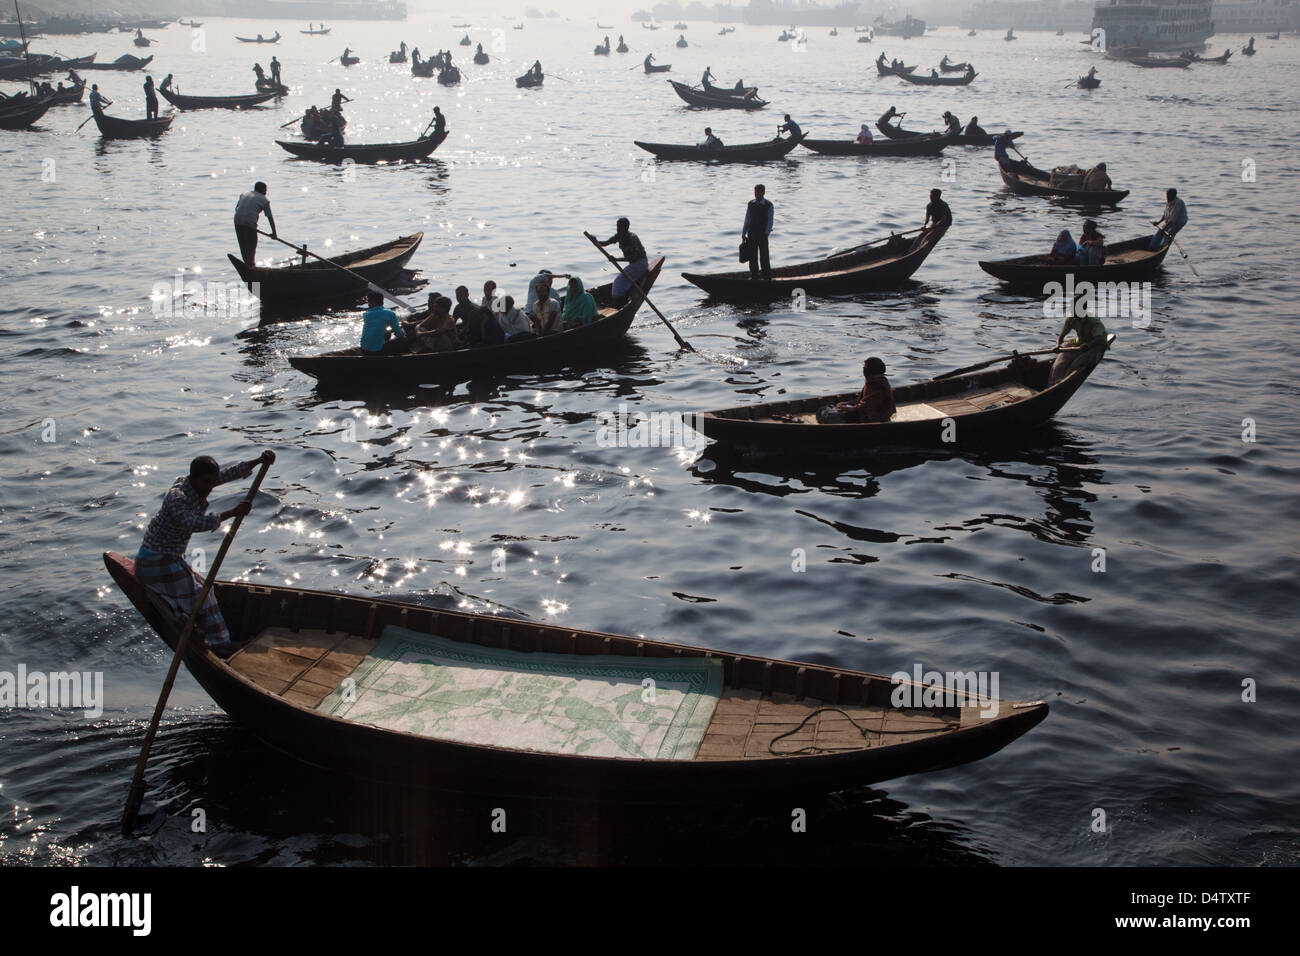 Taxi boats with commuters crossing Buriganga river, Dhaka, Bangladesh. - Stock Image